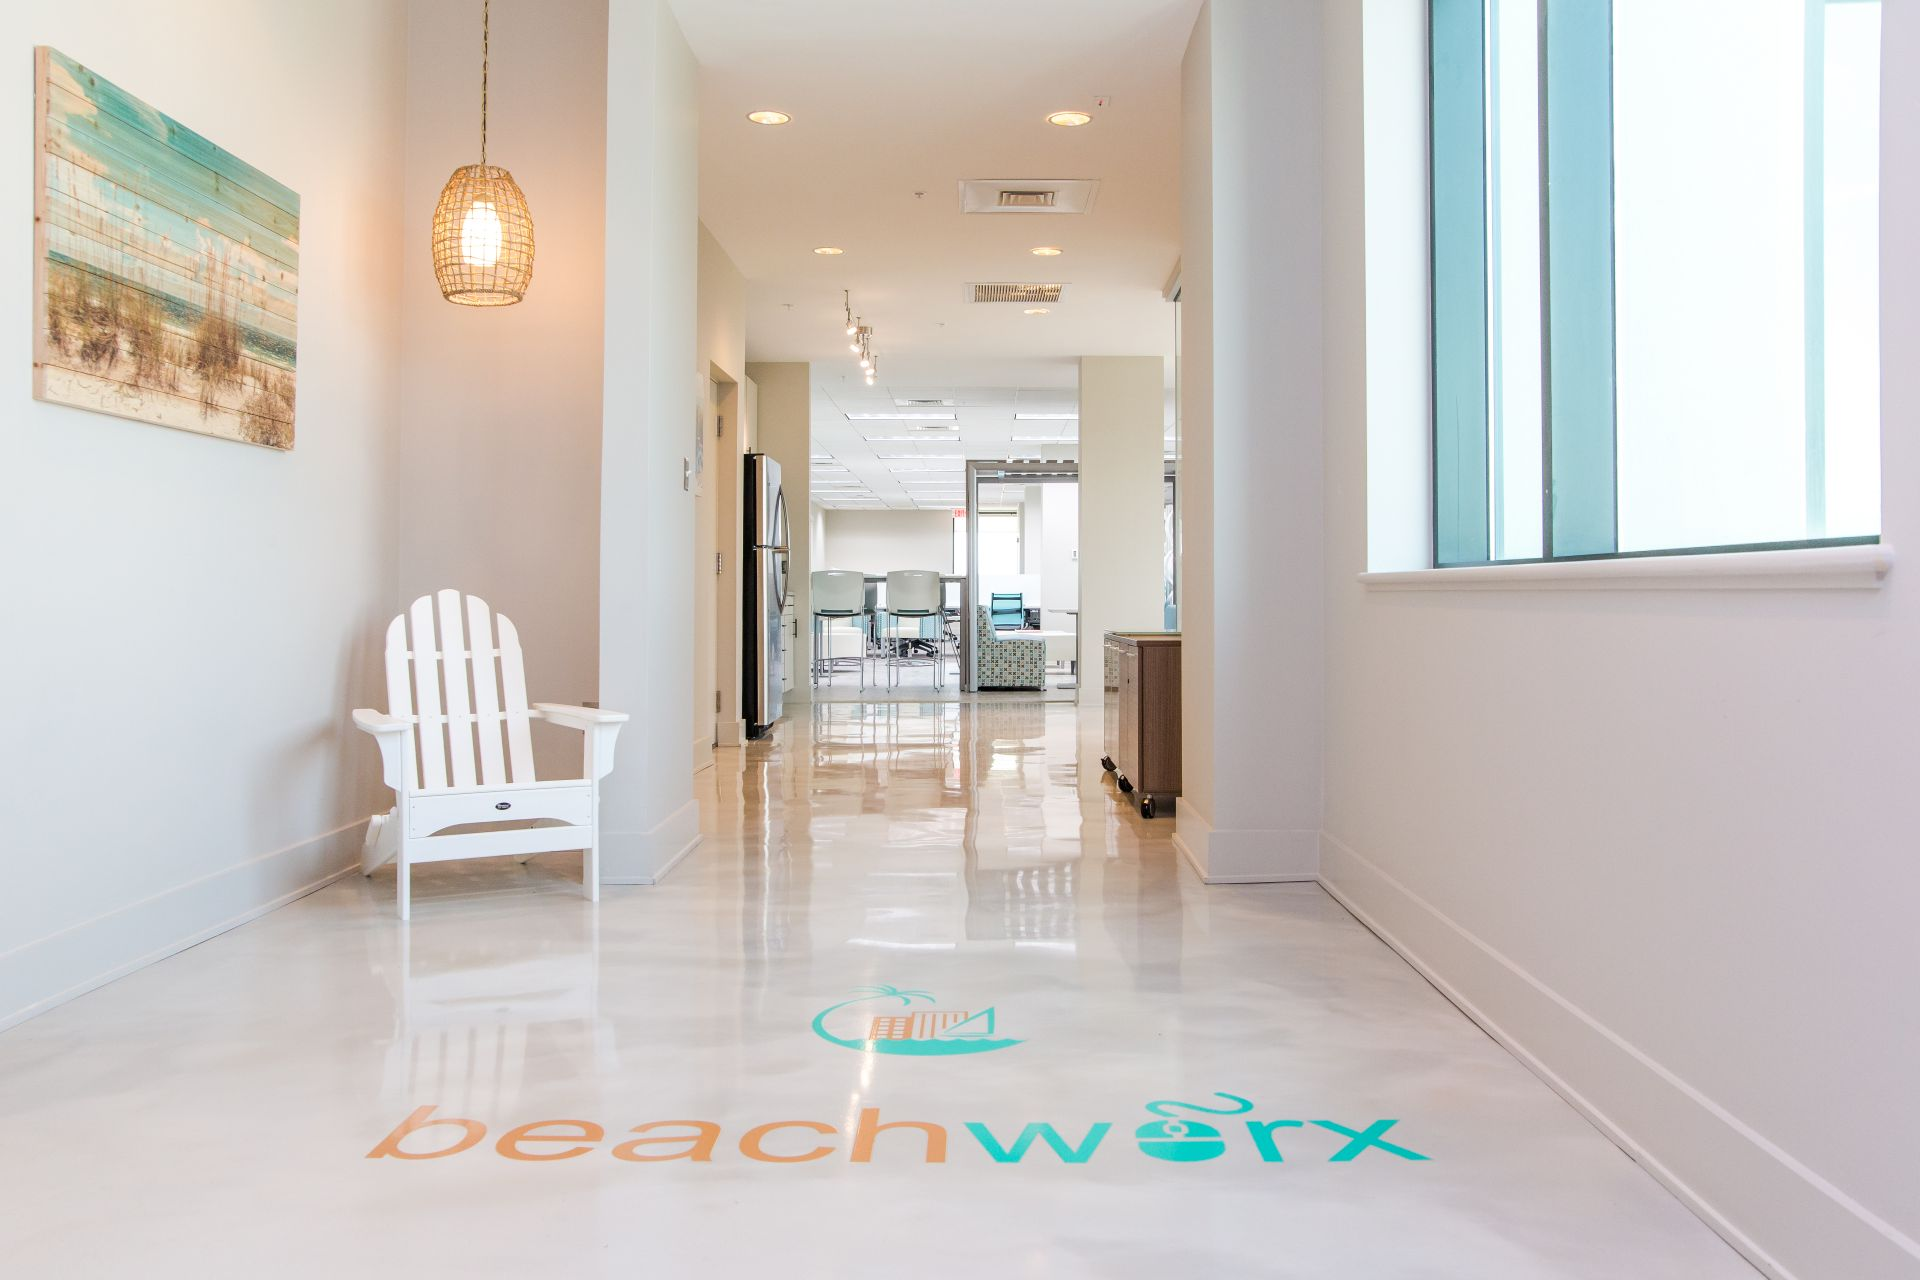 Beachworx, Destin